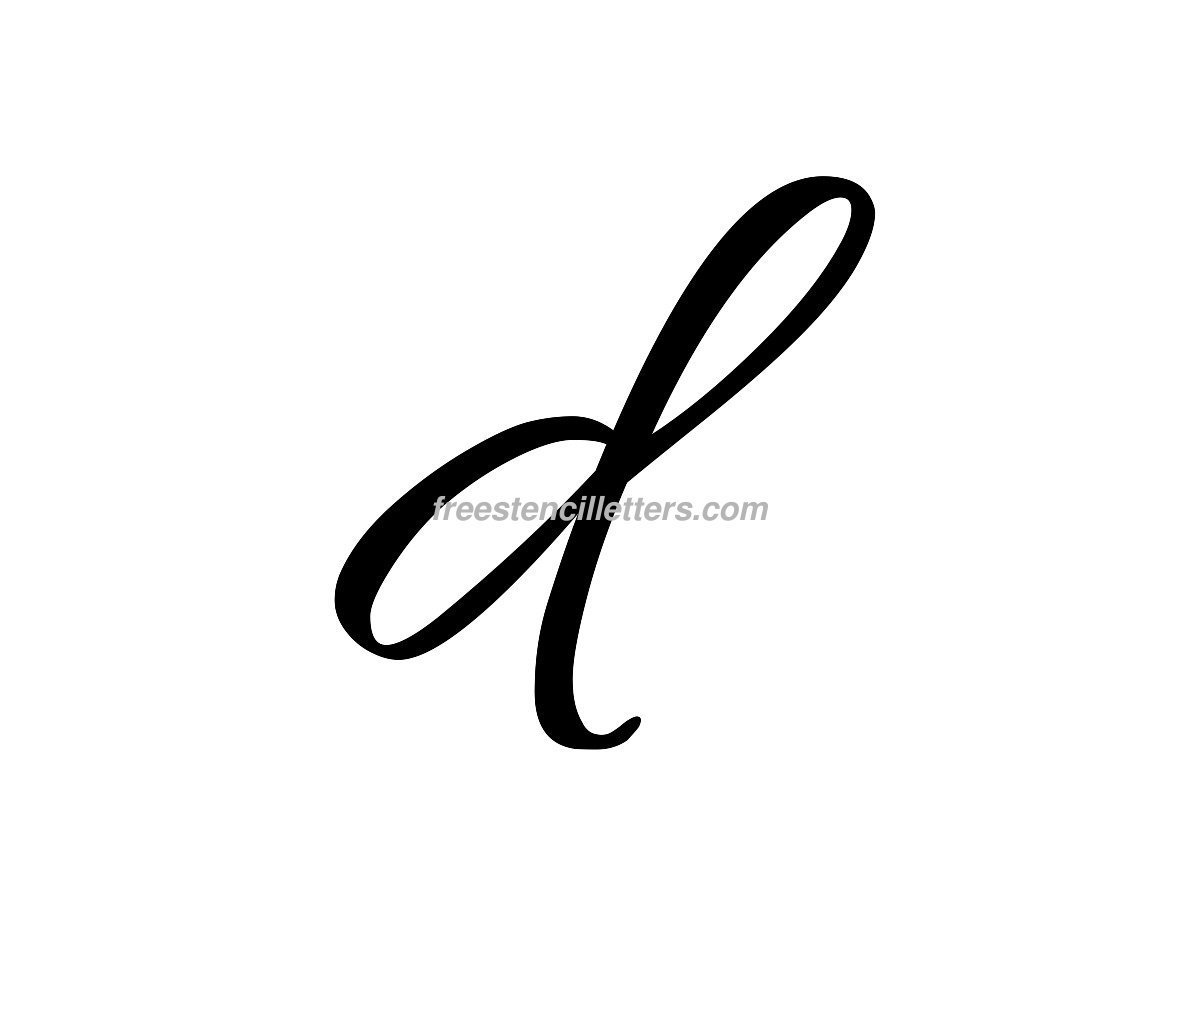 d in cursive writing Mark oppenheimer writes about the pleasures and history of handwriting, especially in cursive script.